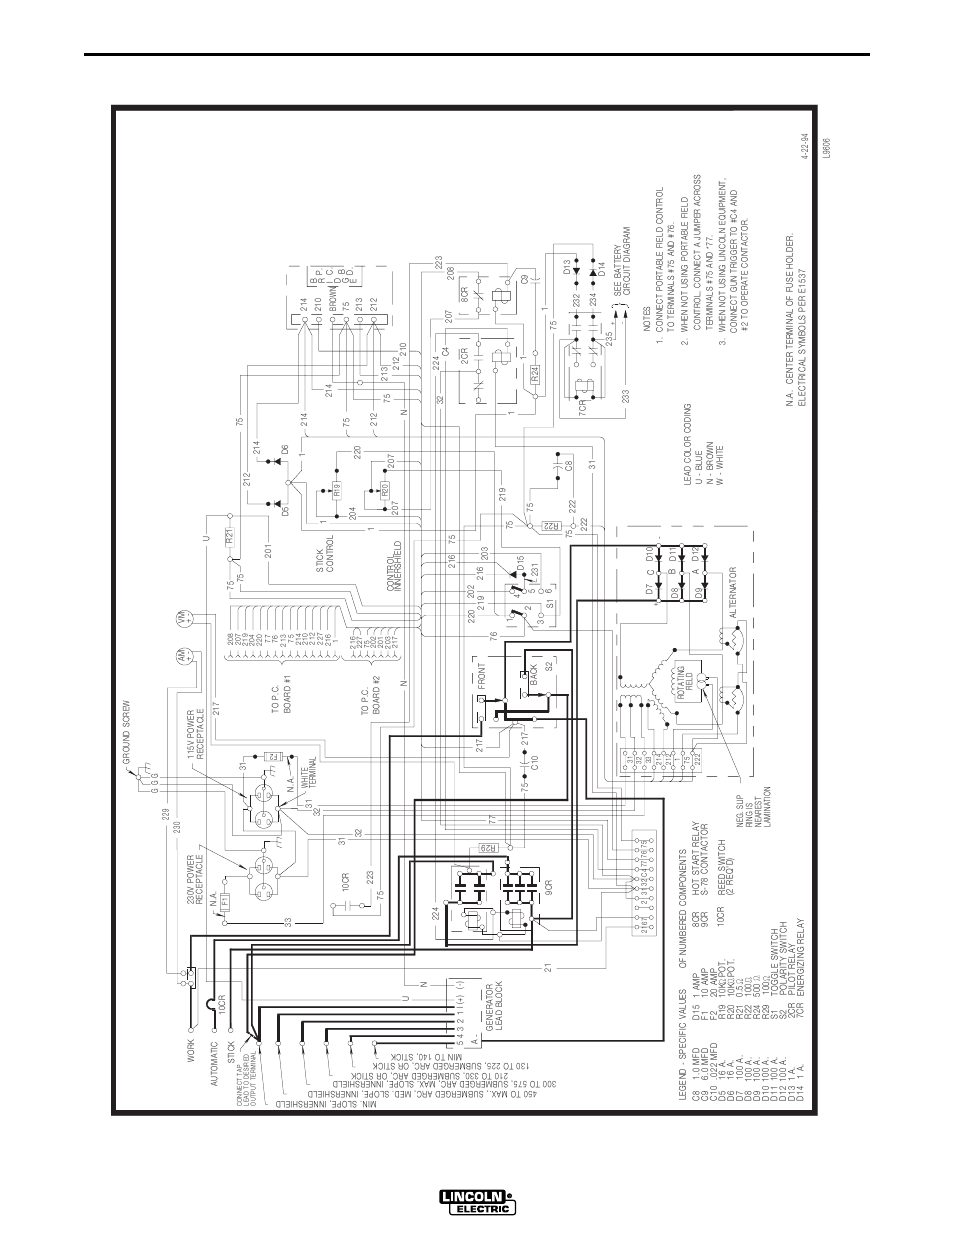 lincoln sae 400 welder wiring diagram lincoln electric welder wiring diagram #7